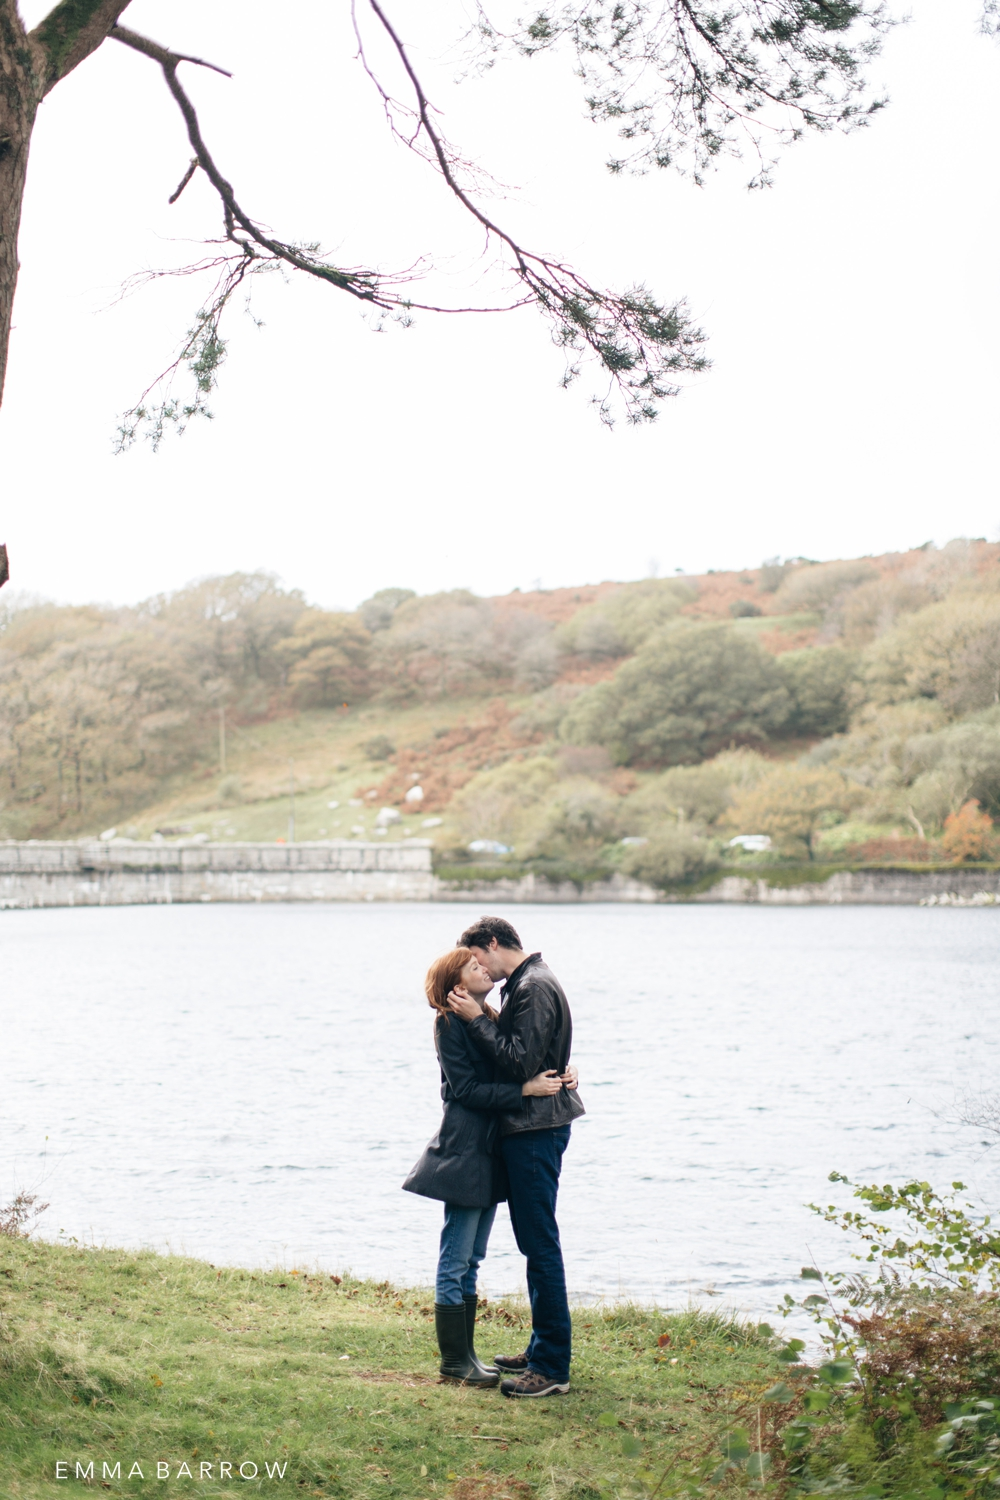 emmabarrow_helenandyPreWed-50.jpg